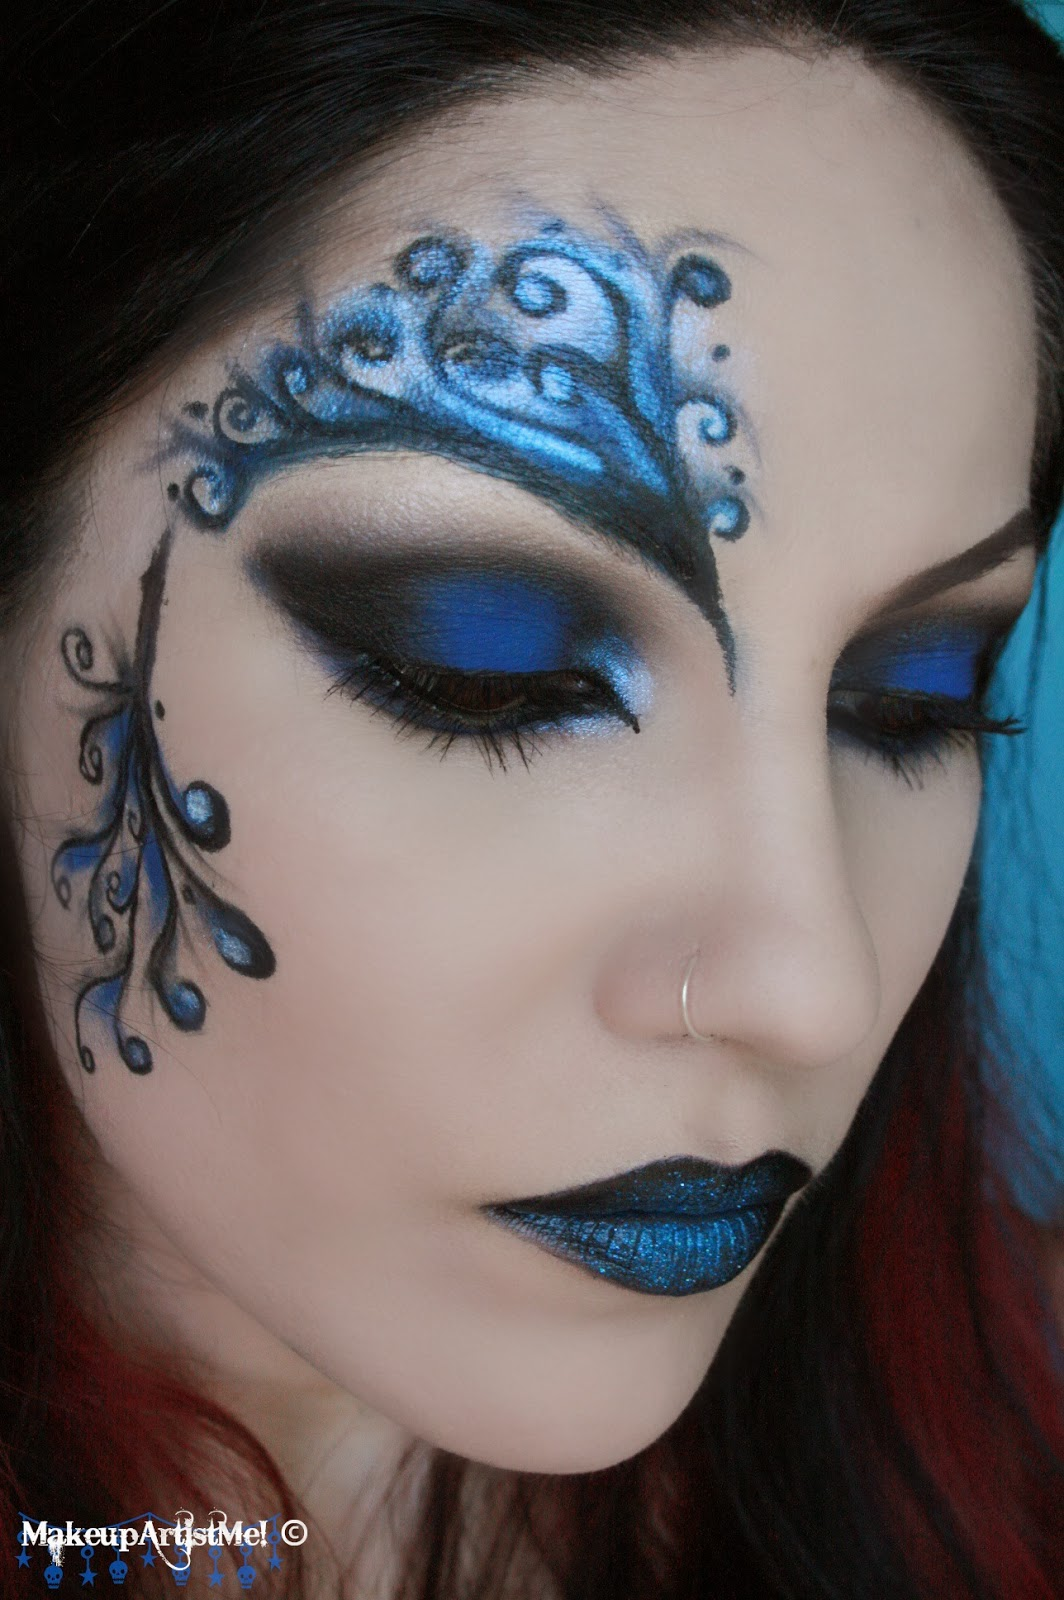 Make up Artist Me!: Blue Secret blue masquerade makeup - Blue Halloween Makeup